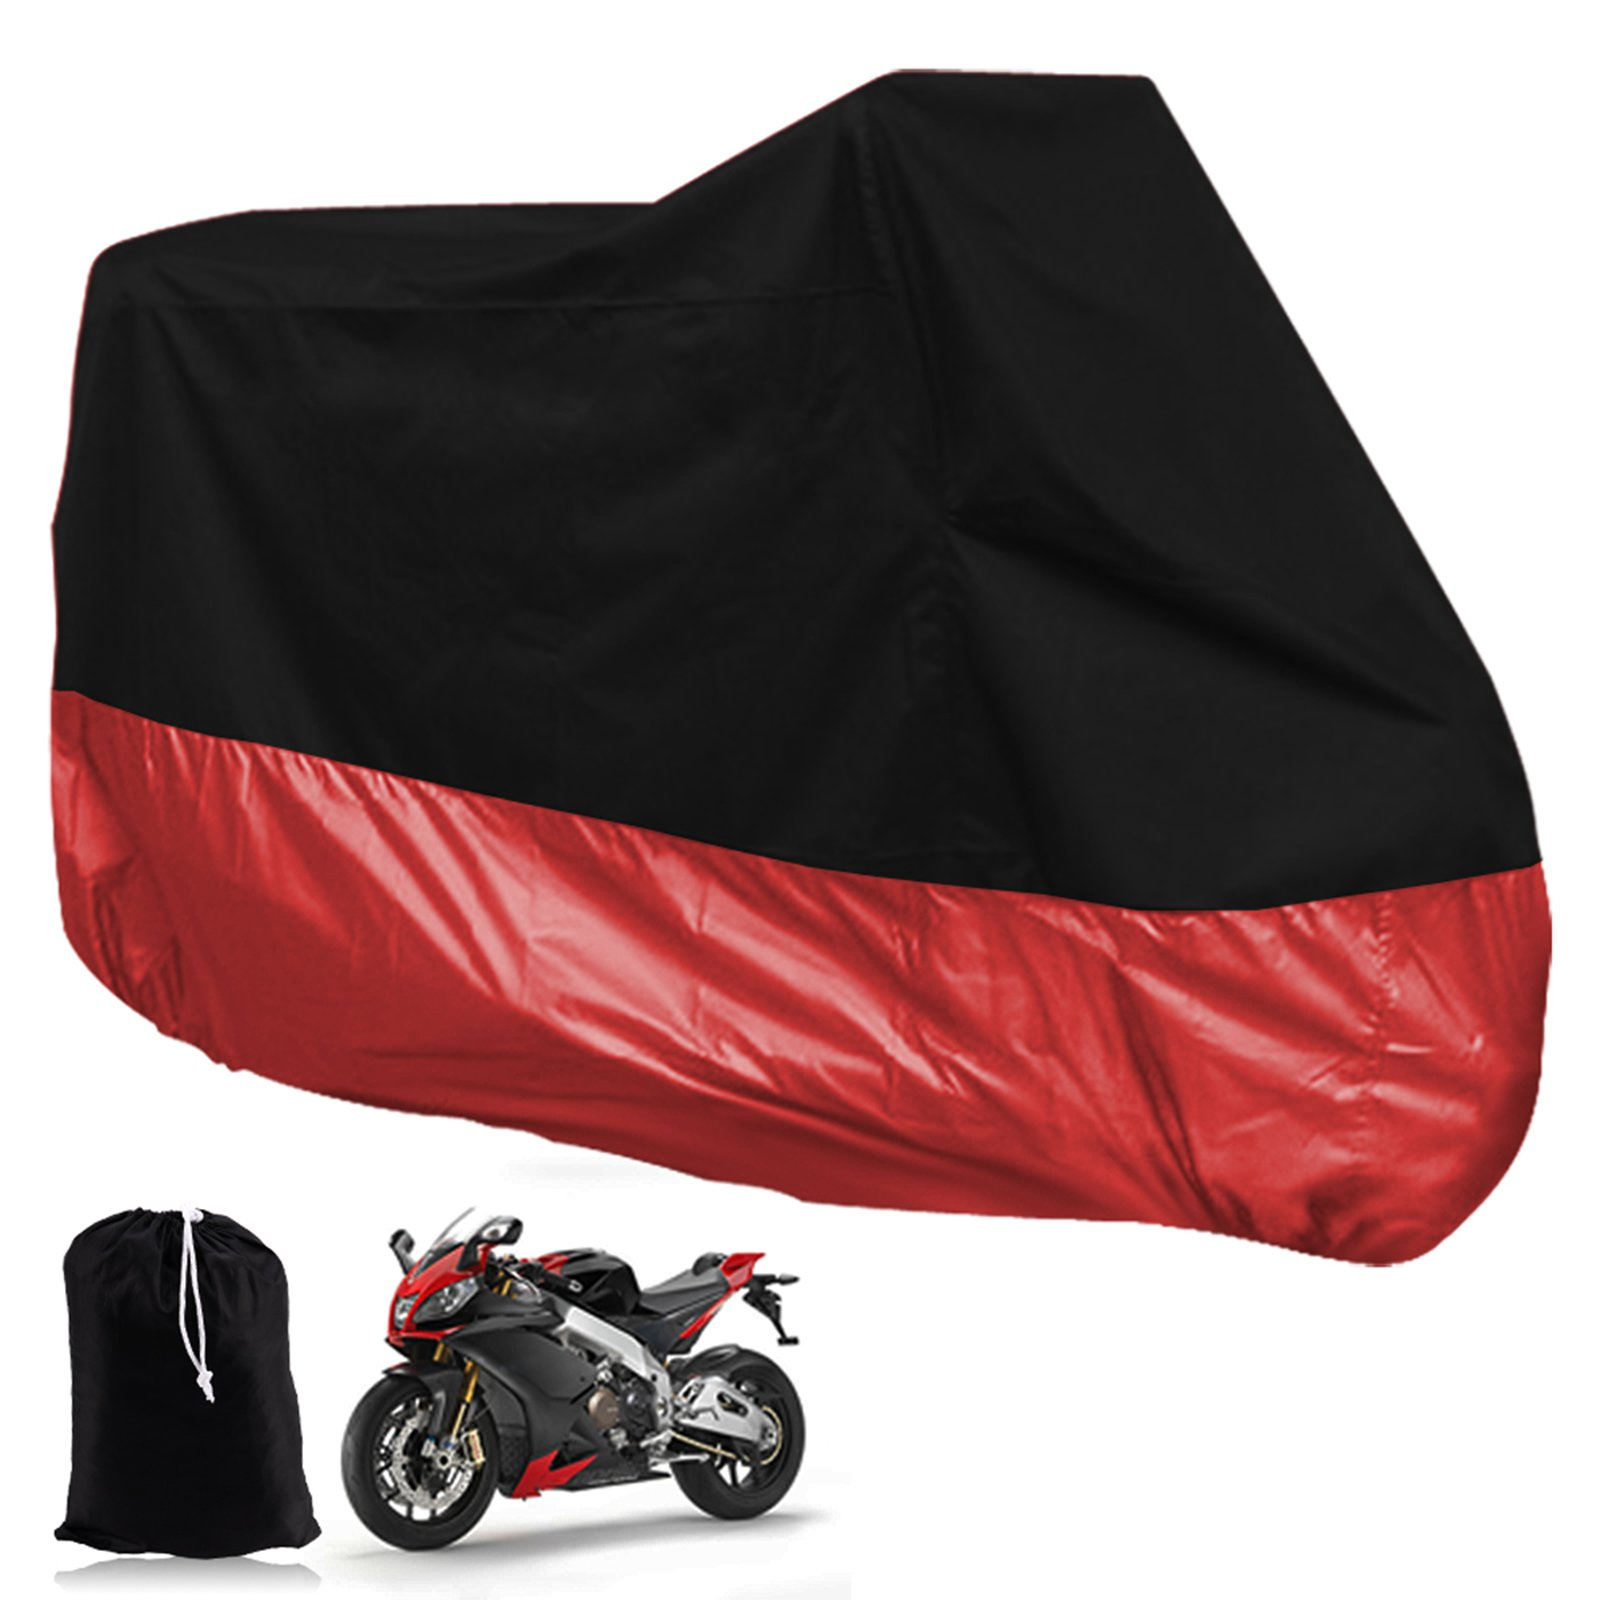 TARP COVER MOTO Motorcycle Cover scooter bike ATV 245cm Size XL black red protection atv запчасти и аксессуары hl xl atv